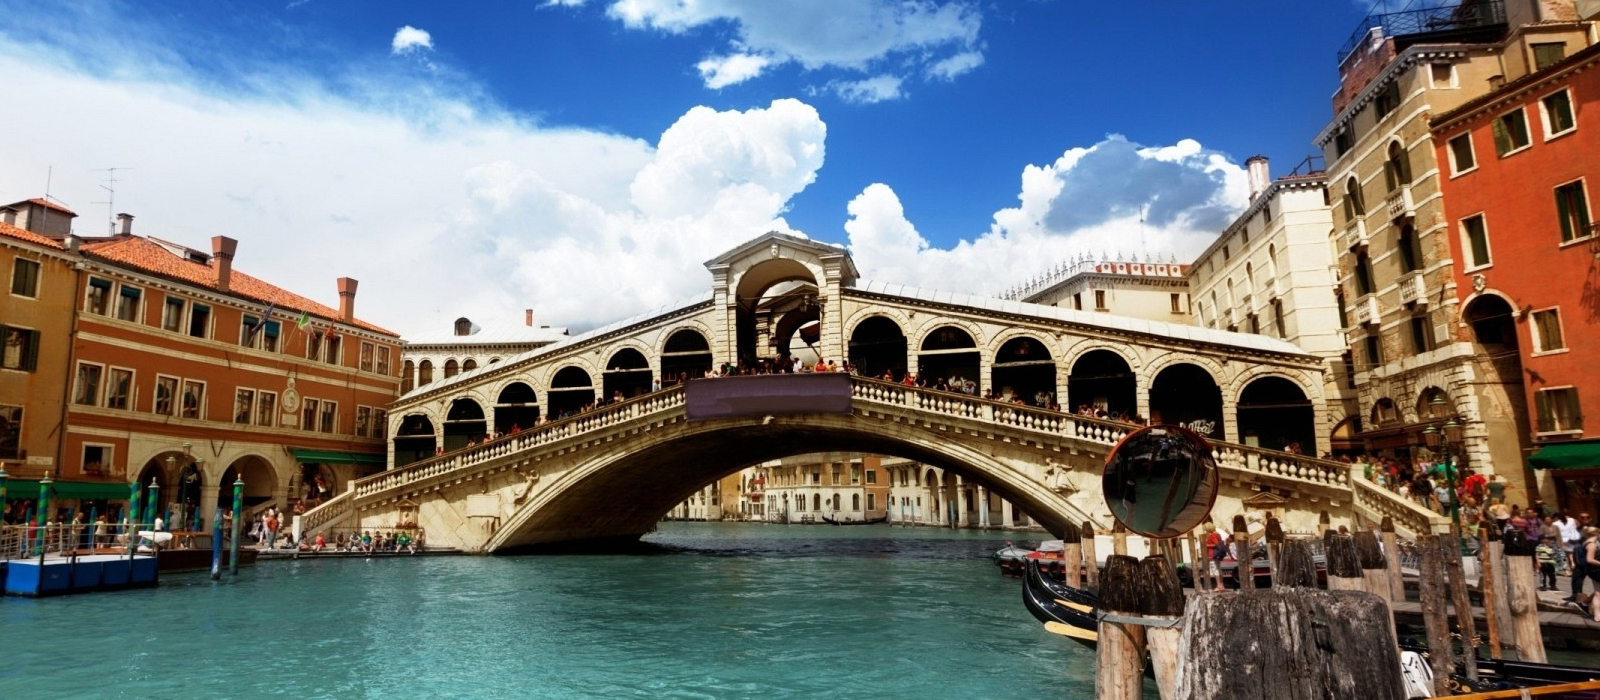 Study in Italy: Course Search and Advice, Cost and Visa ...